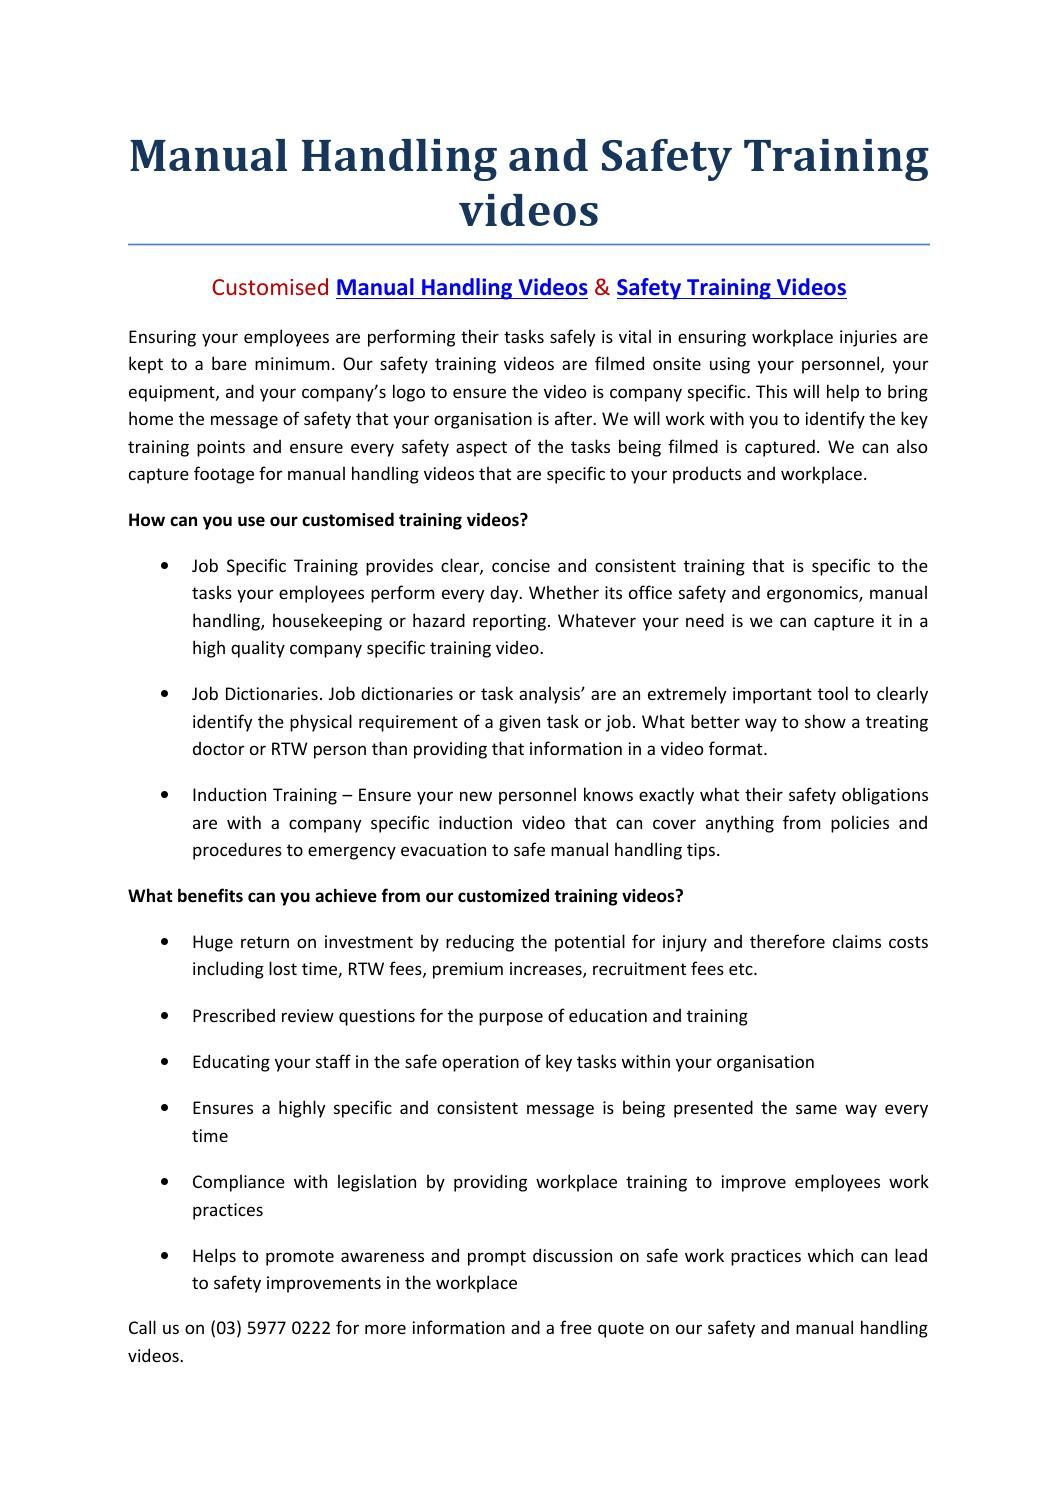 Manual Handling And Safety Training Videos  Fit Videos And